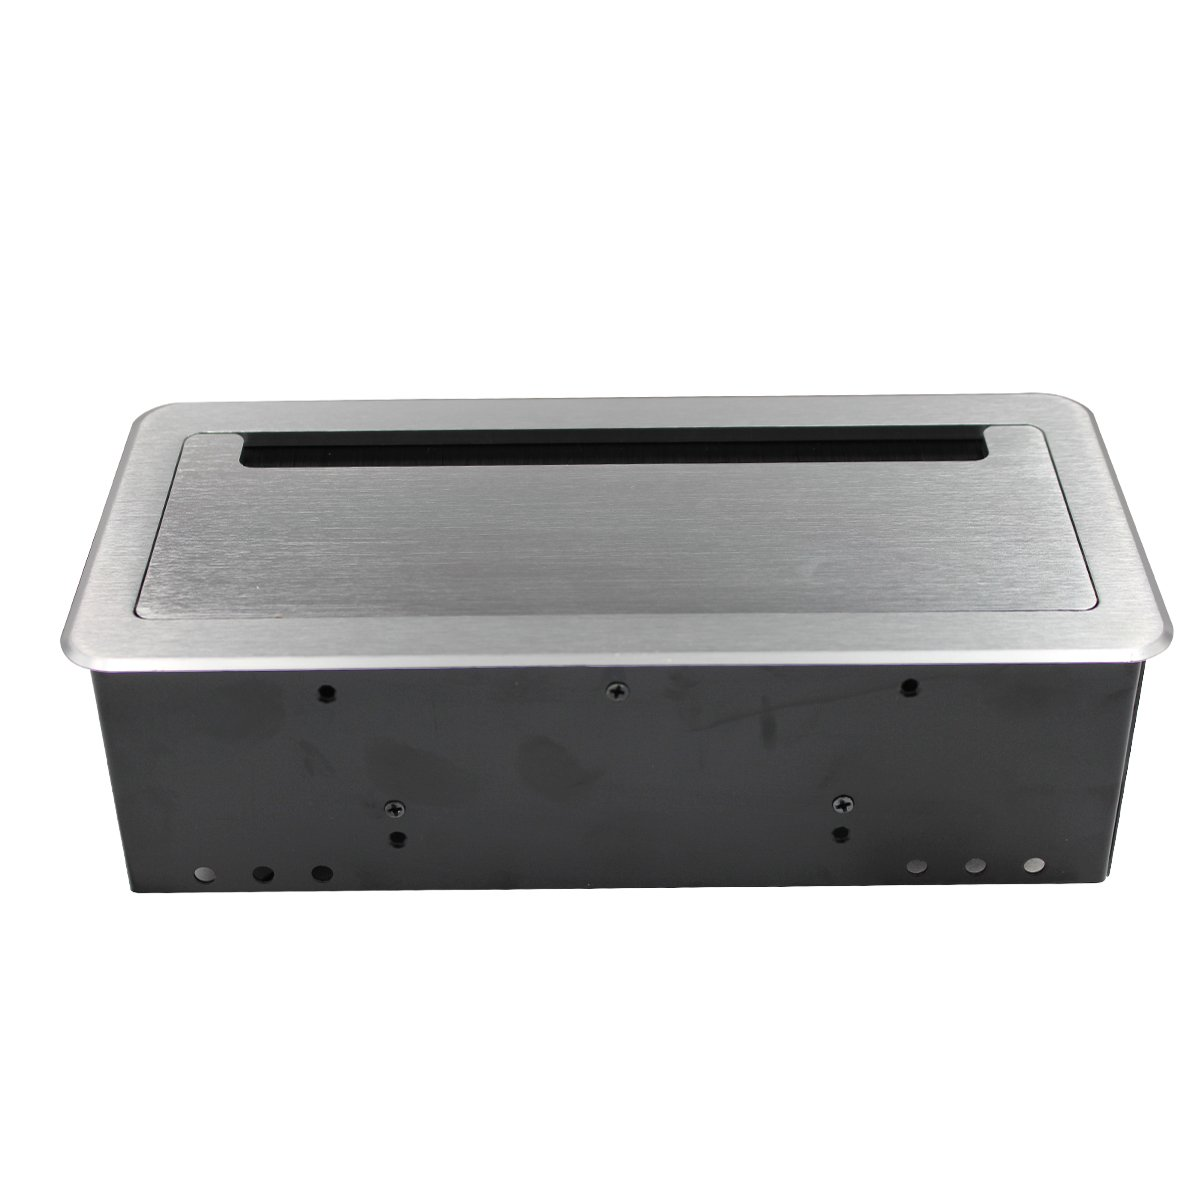 Multimedia Desktop Socket Tabletop Conference Table Connectivity Box Data Port Hidden Power Center by wiistar